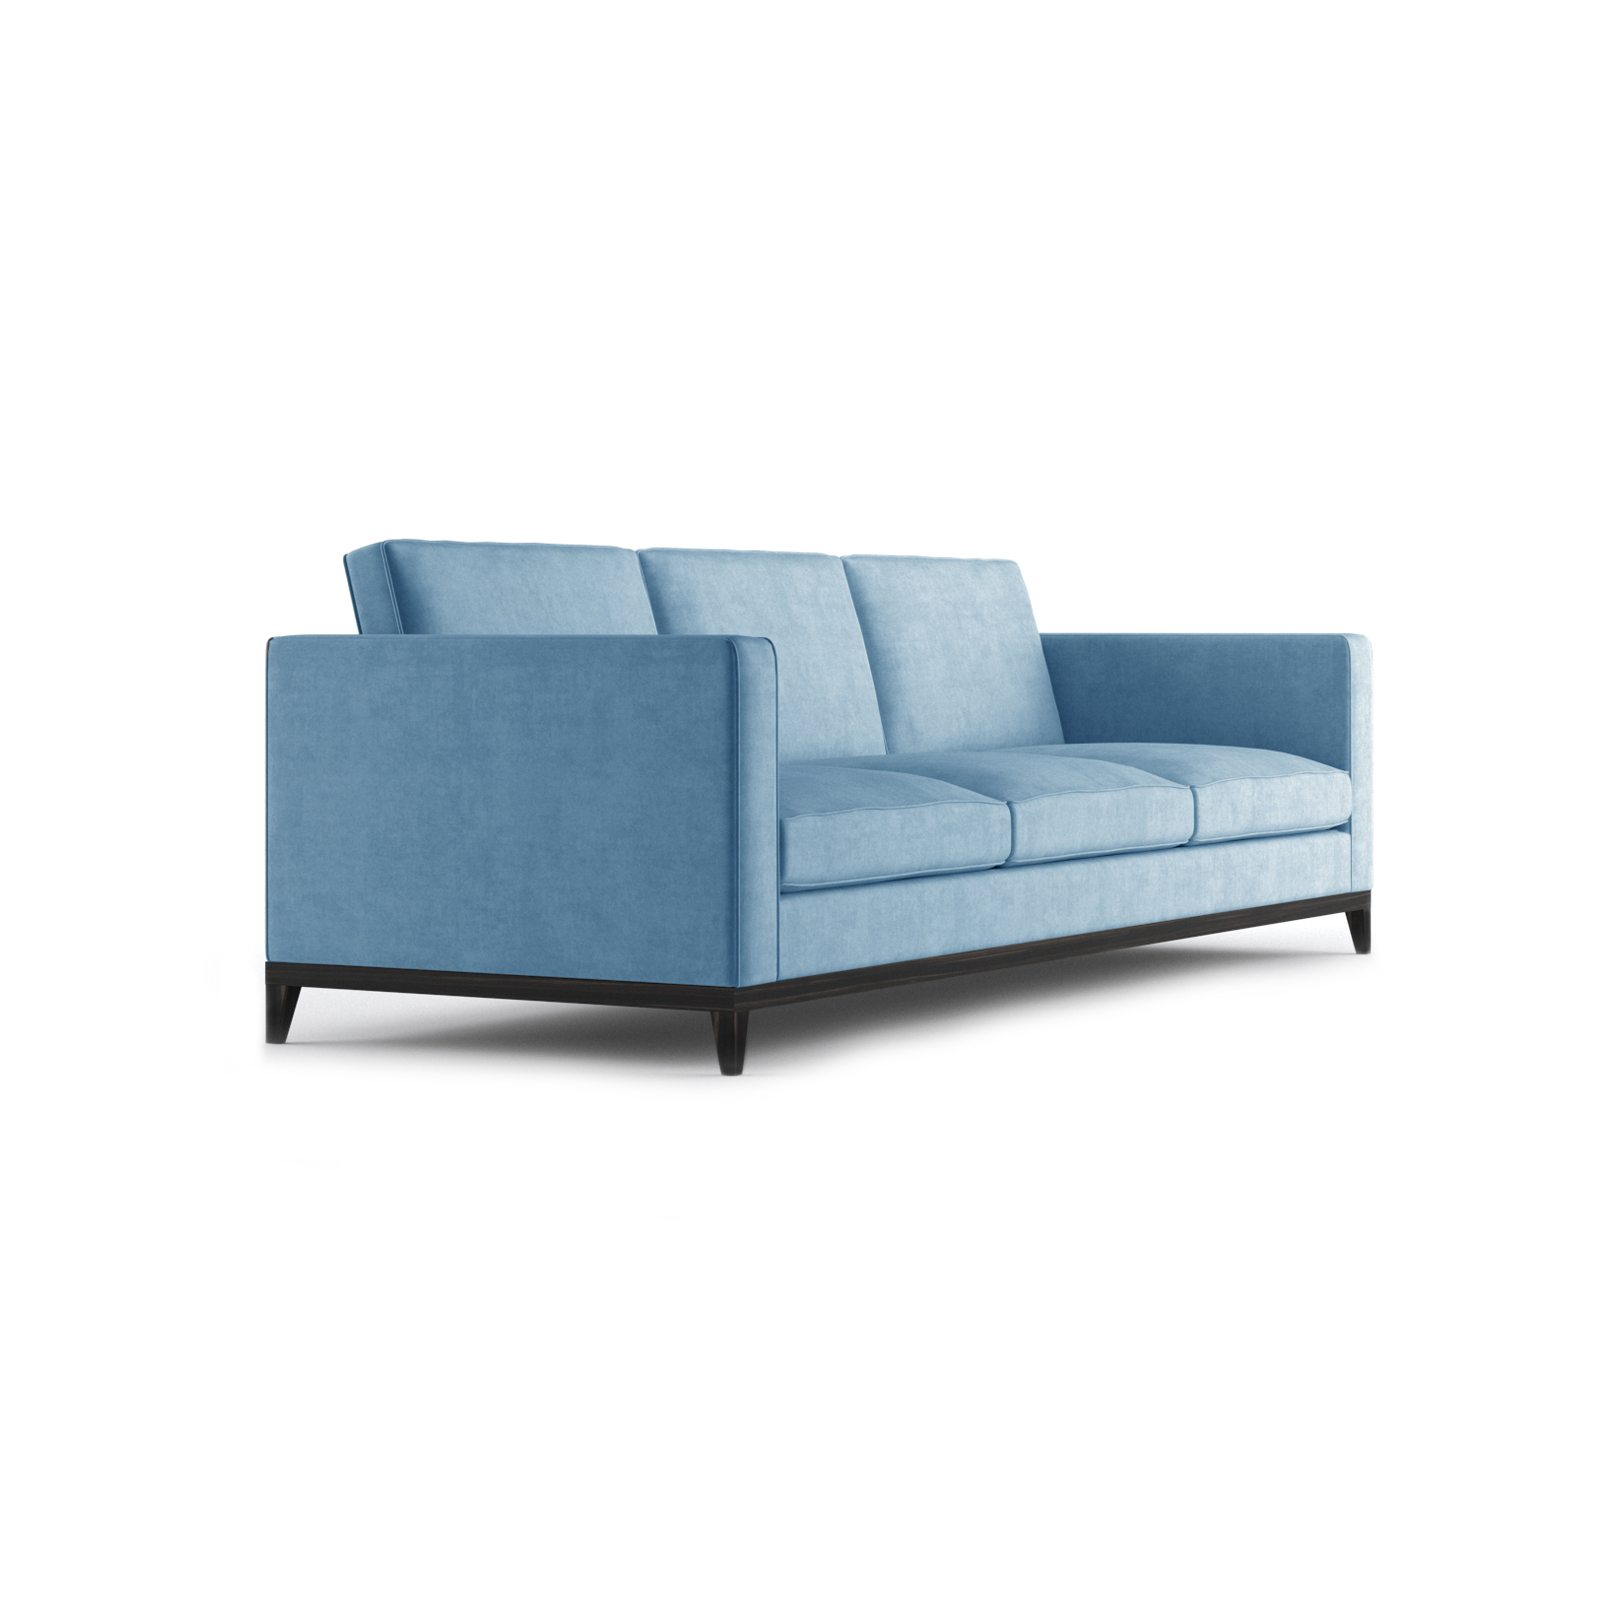 Armstrong Three and a Half Seater Sofa by Bonham & Bonham Blue 11